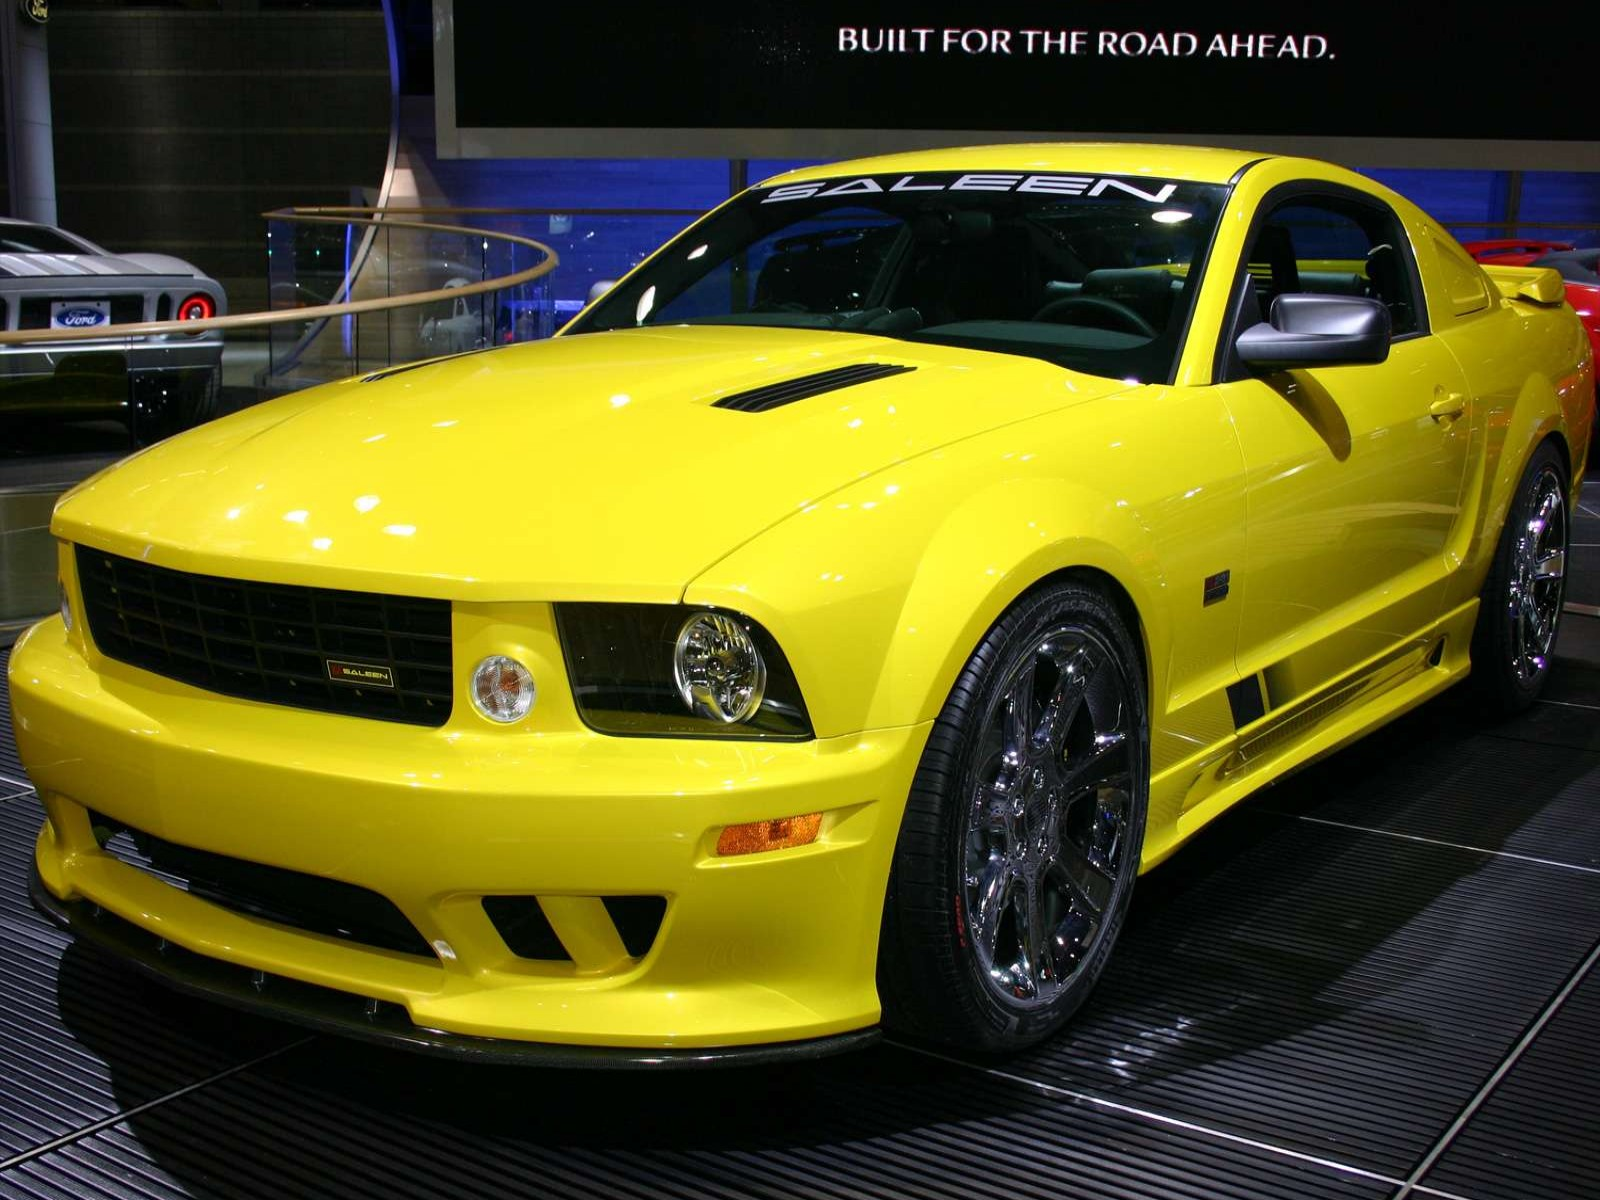 2005 ford mustang saleen s281 car autos gallery. Black Bedroom Furniture Sets. Home Design Ideas